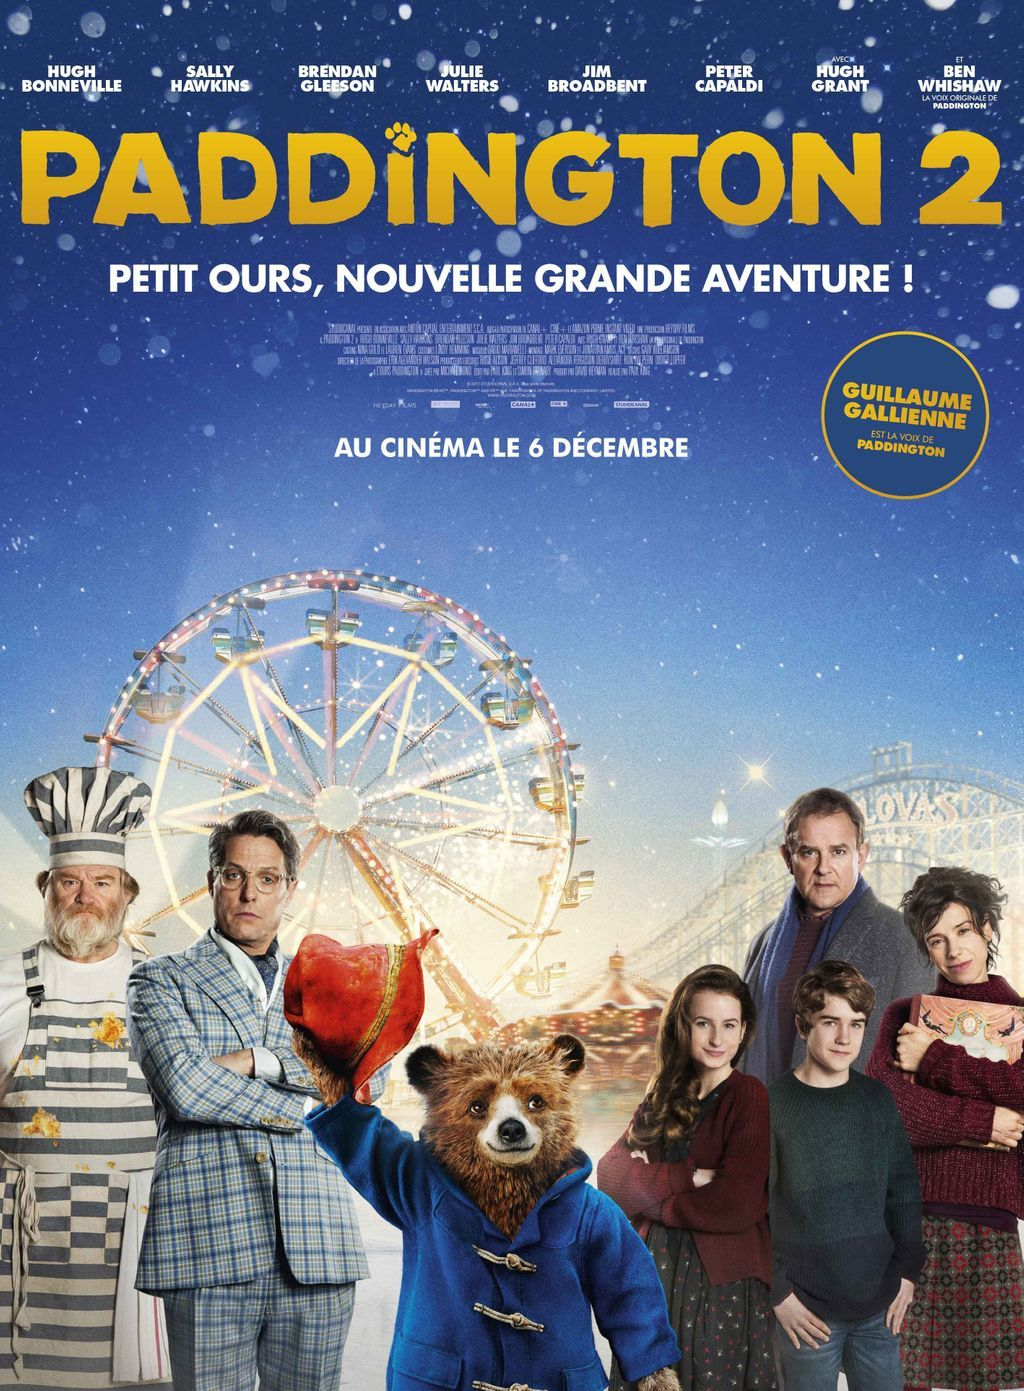 PADDINGTON_2_AFFICHE_GENERIQUE